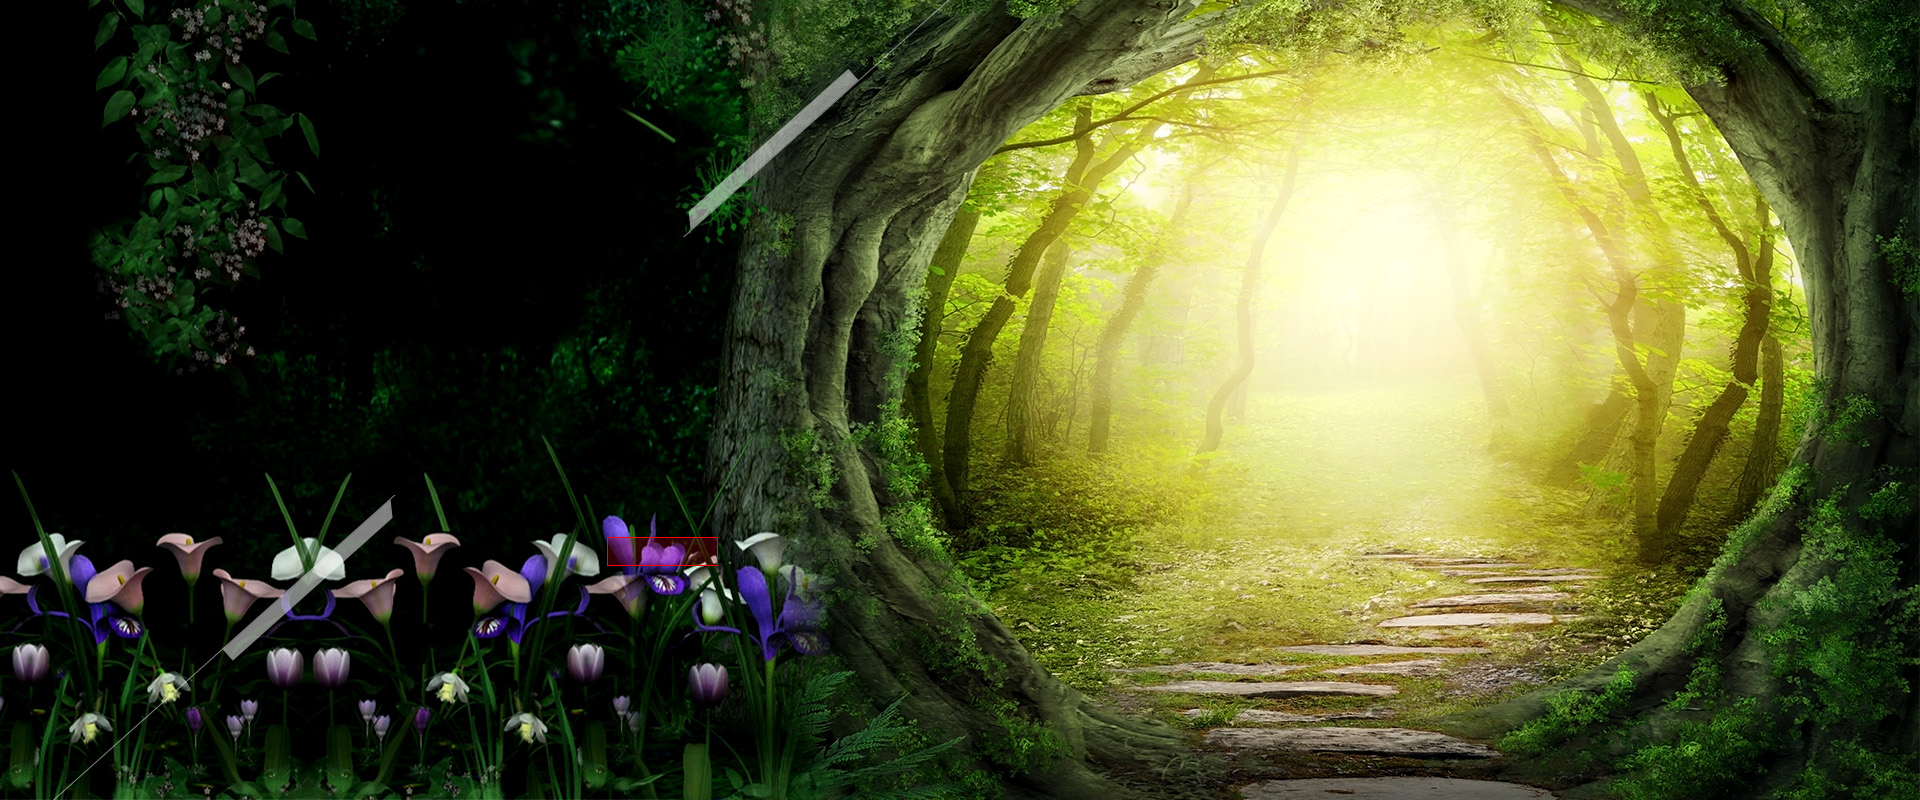 Forest flowers background natural beautiful romantic - Nature love images free download ...